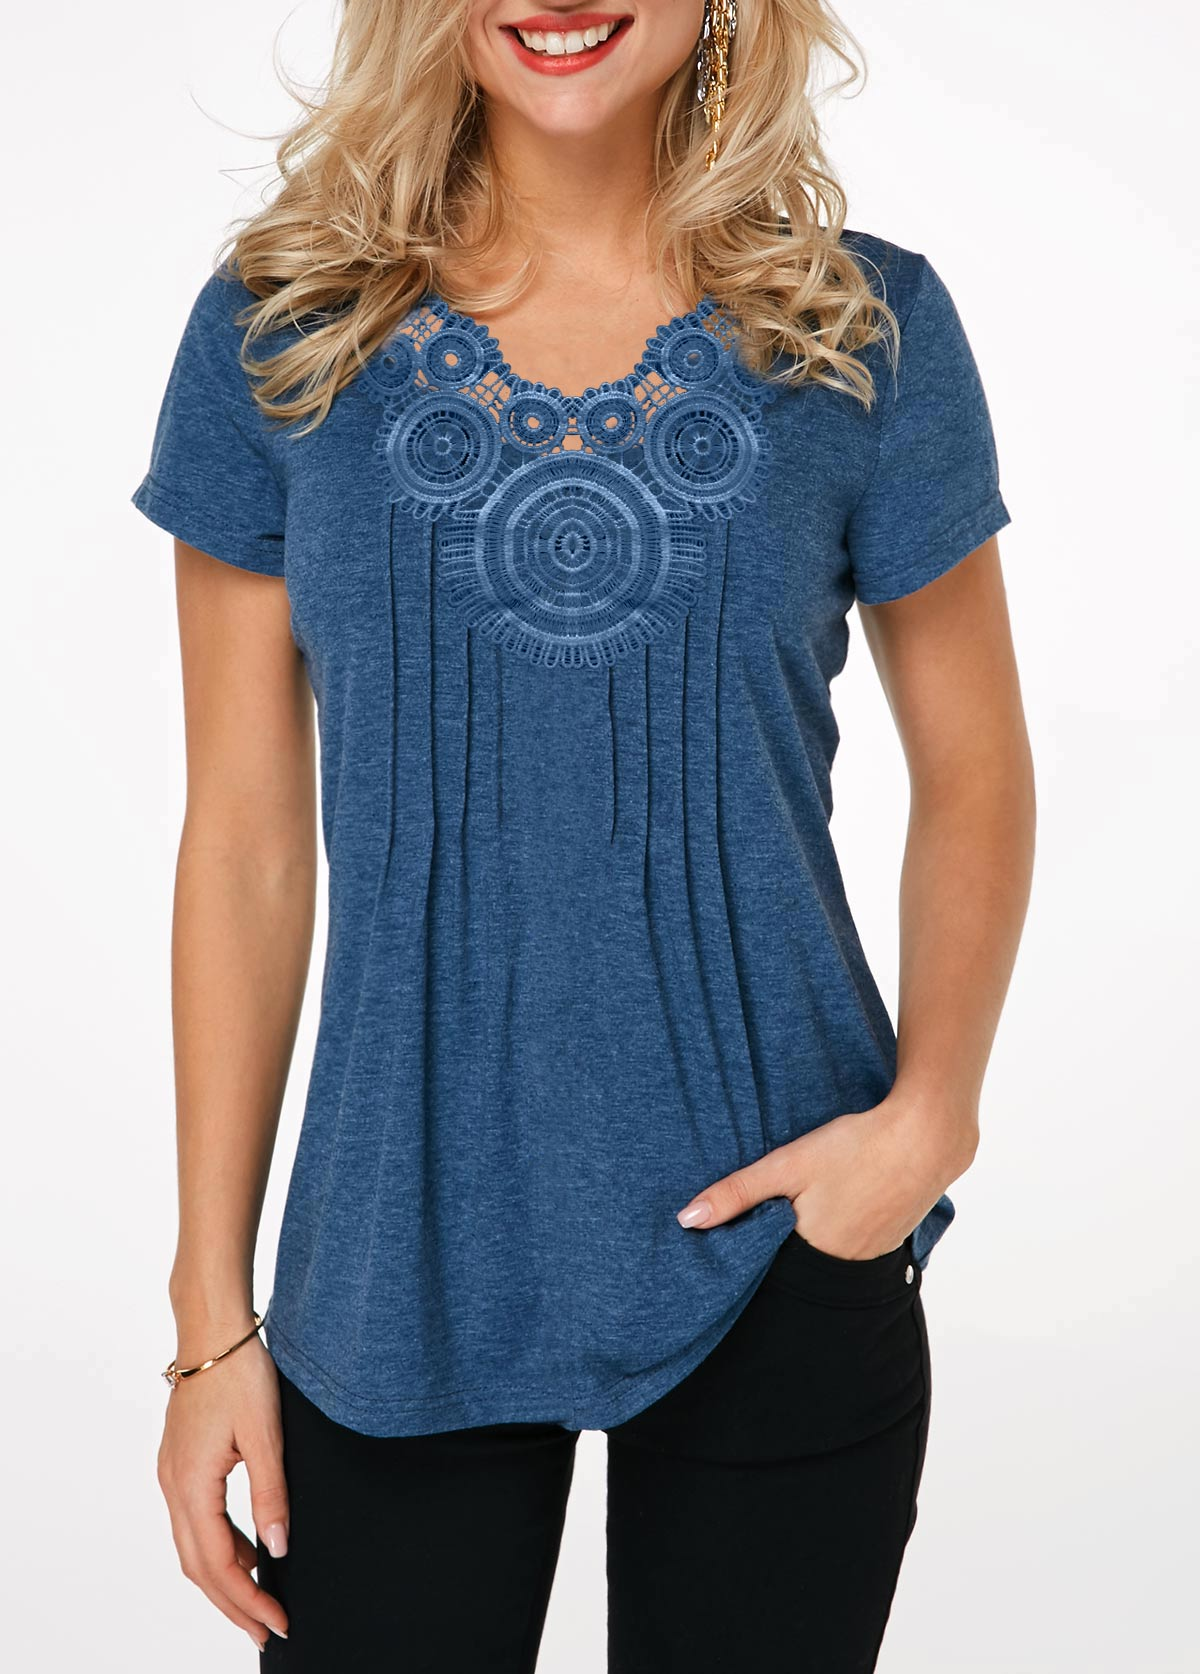 Short Sleeve Crinkle Chest Blue T Shirt